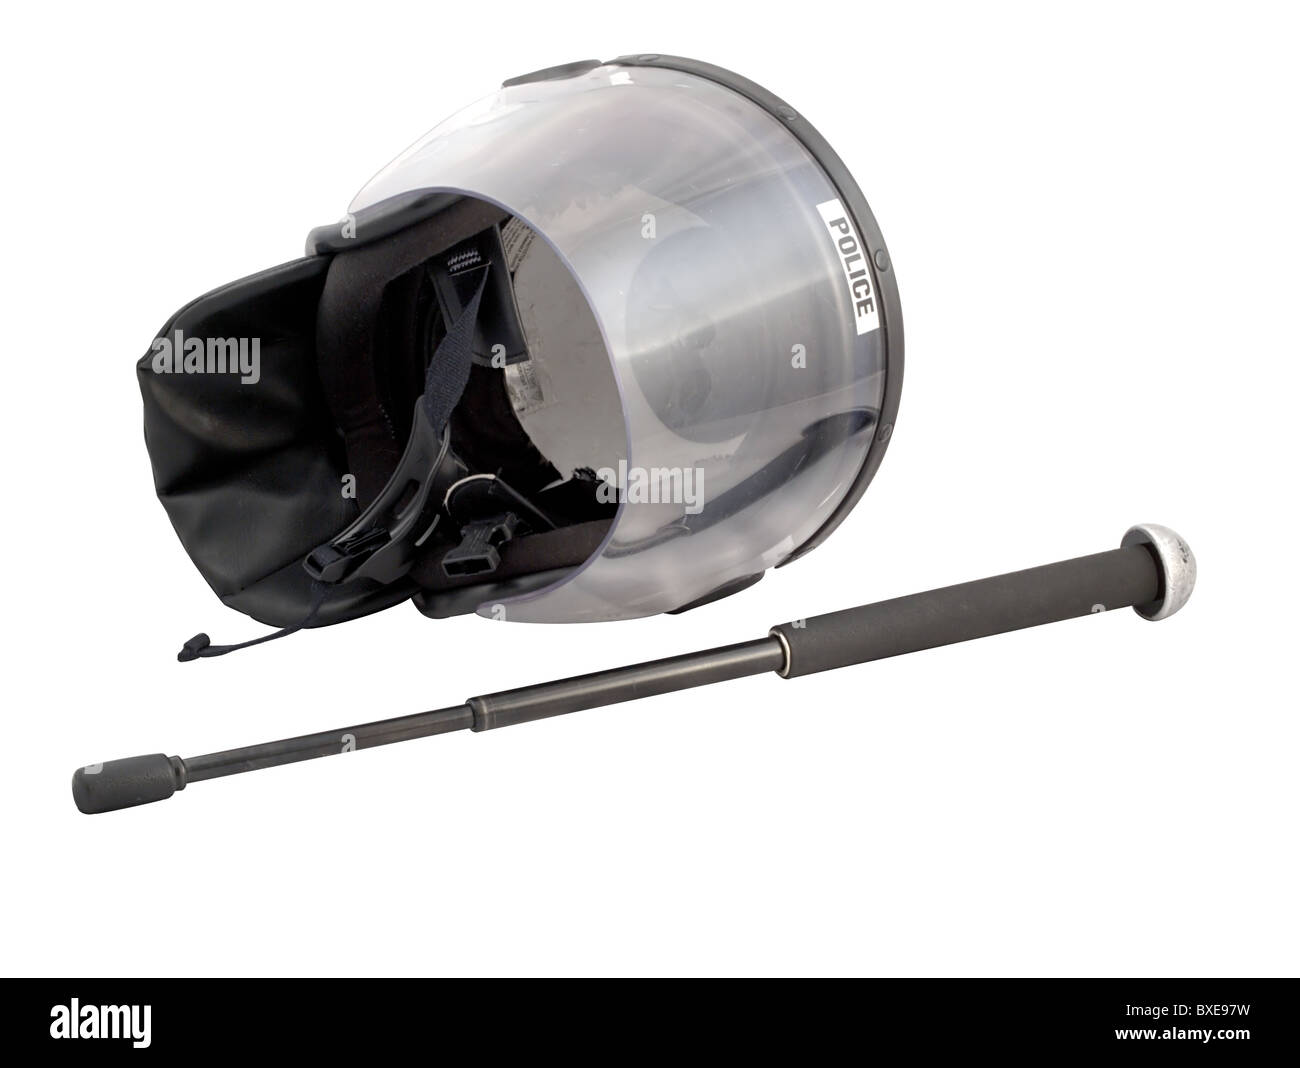 Police riot helmet and baton - isolated over white. - Stock Image